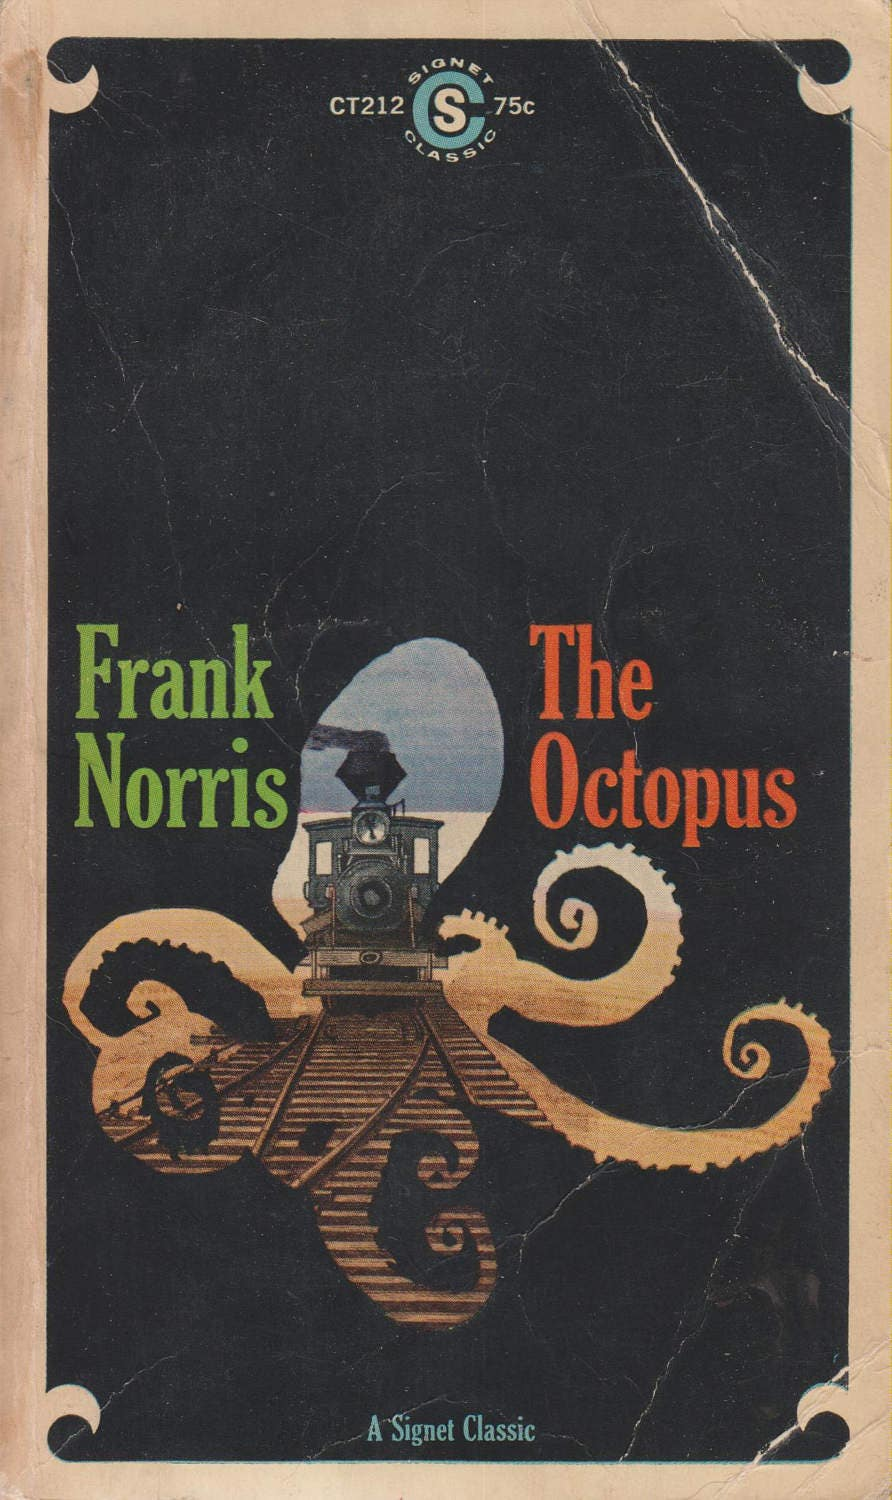 the octopus novel The octopus has 1425 ratings and 128 reviews p said: this was my third time  reading this book i first read it for an american lit survey course in c.